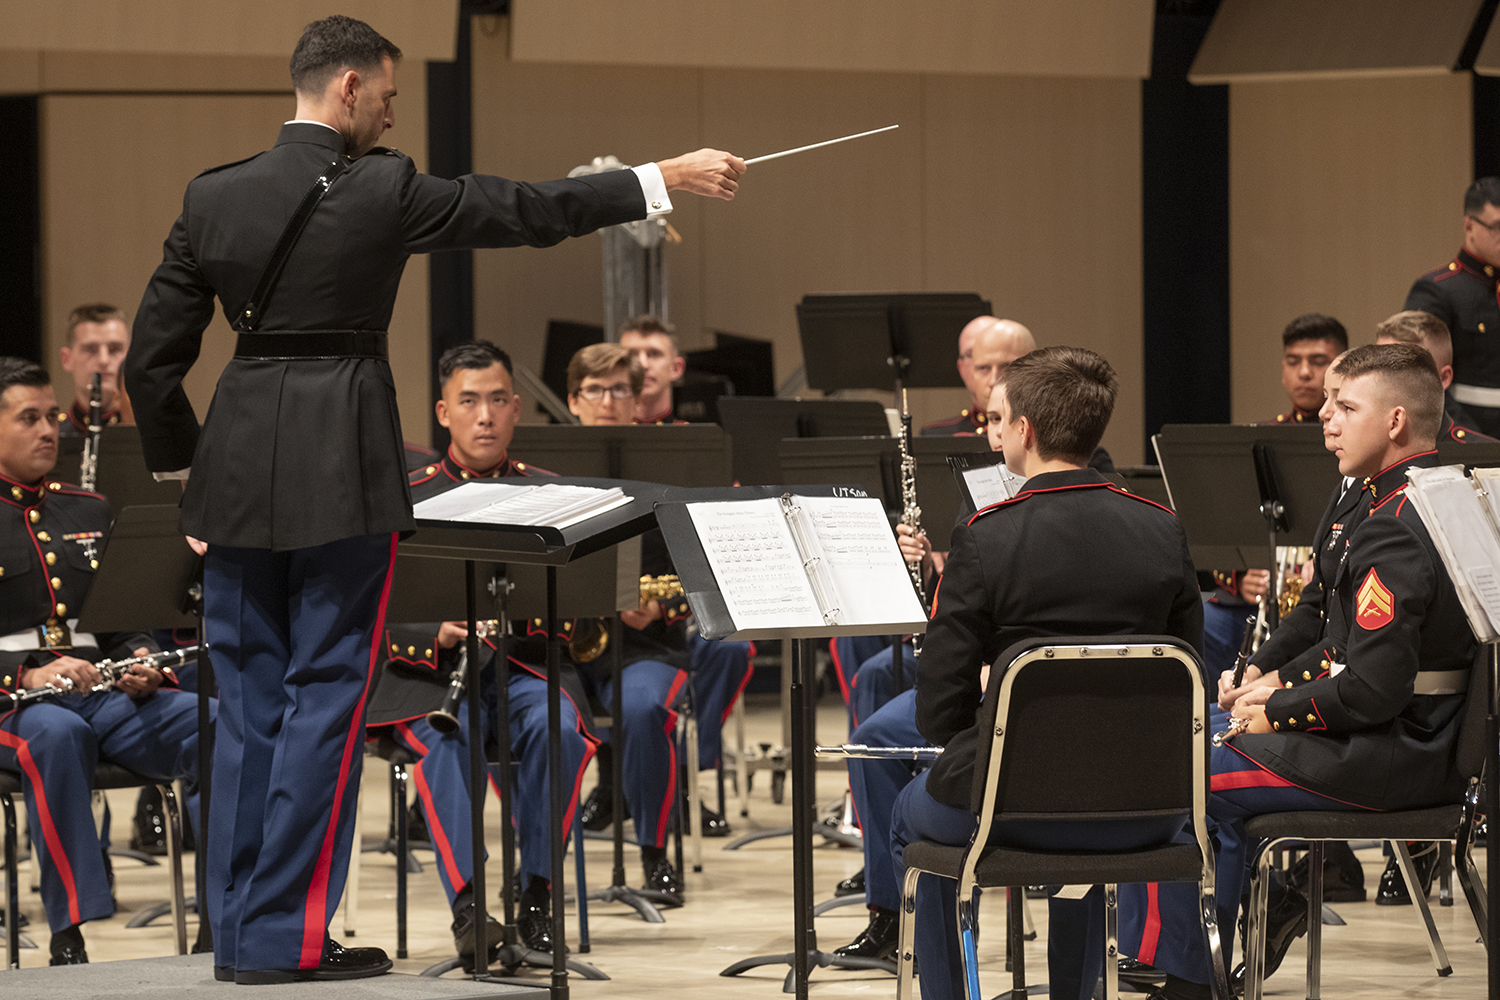 Warrant Officer Alex Panos conducts the band during the concert featuring the Marine Core Band concert at Voxman Music Building on Monday, April 15, 2019.